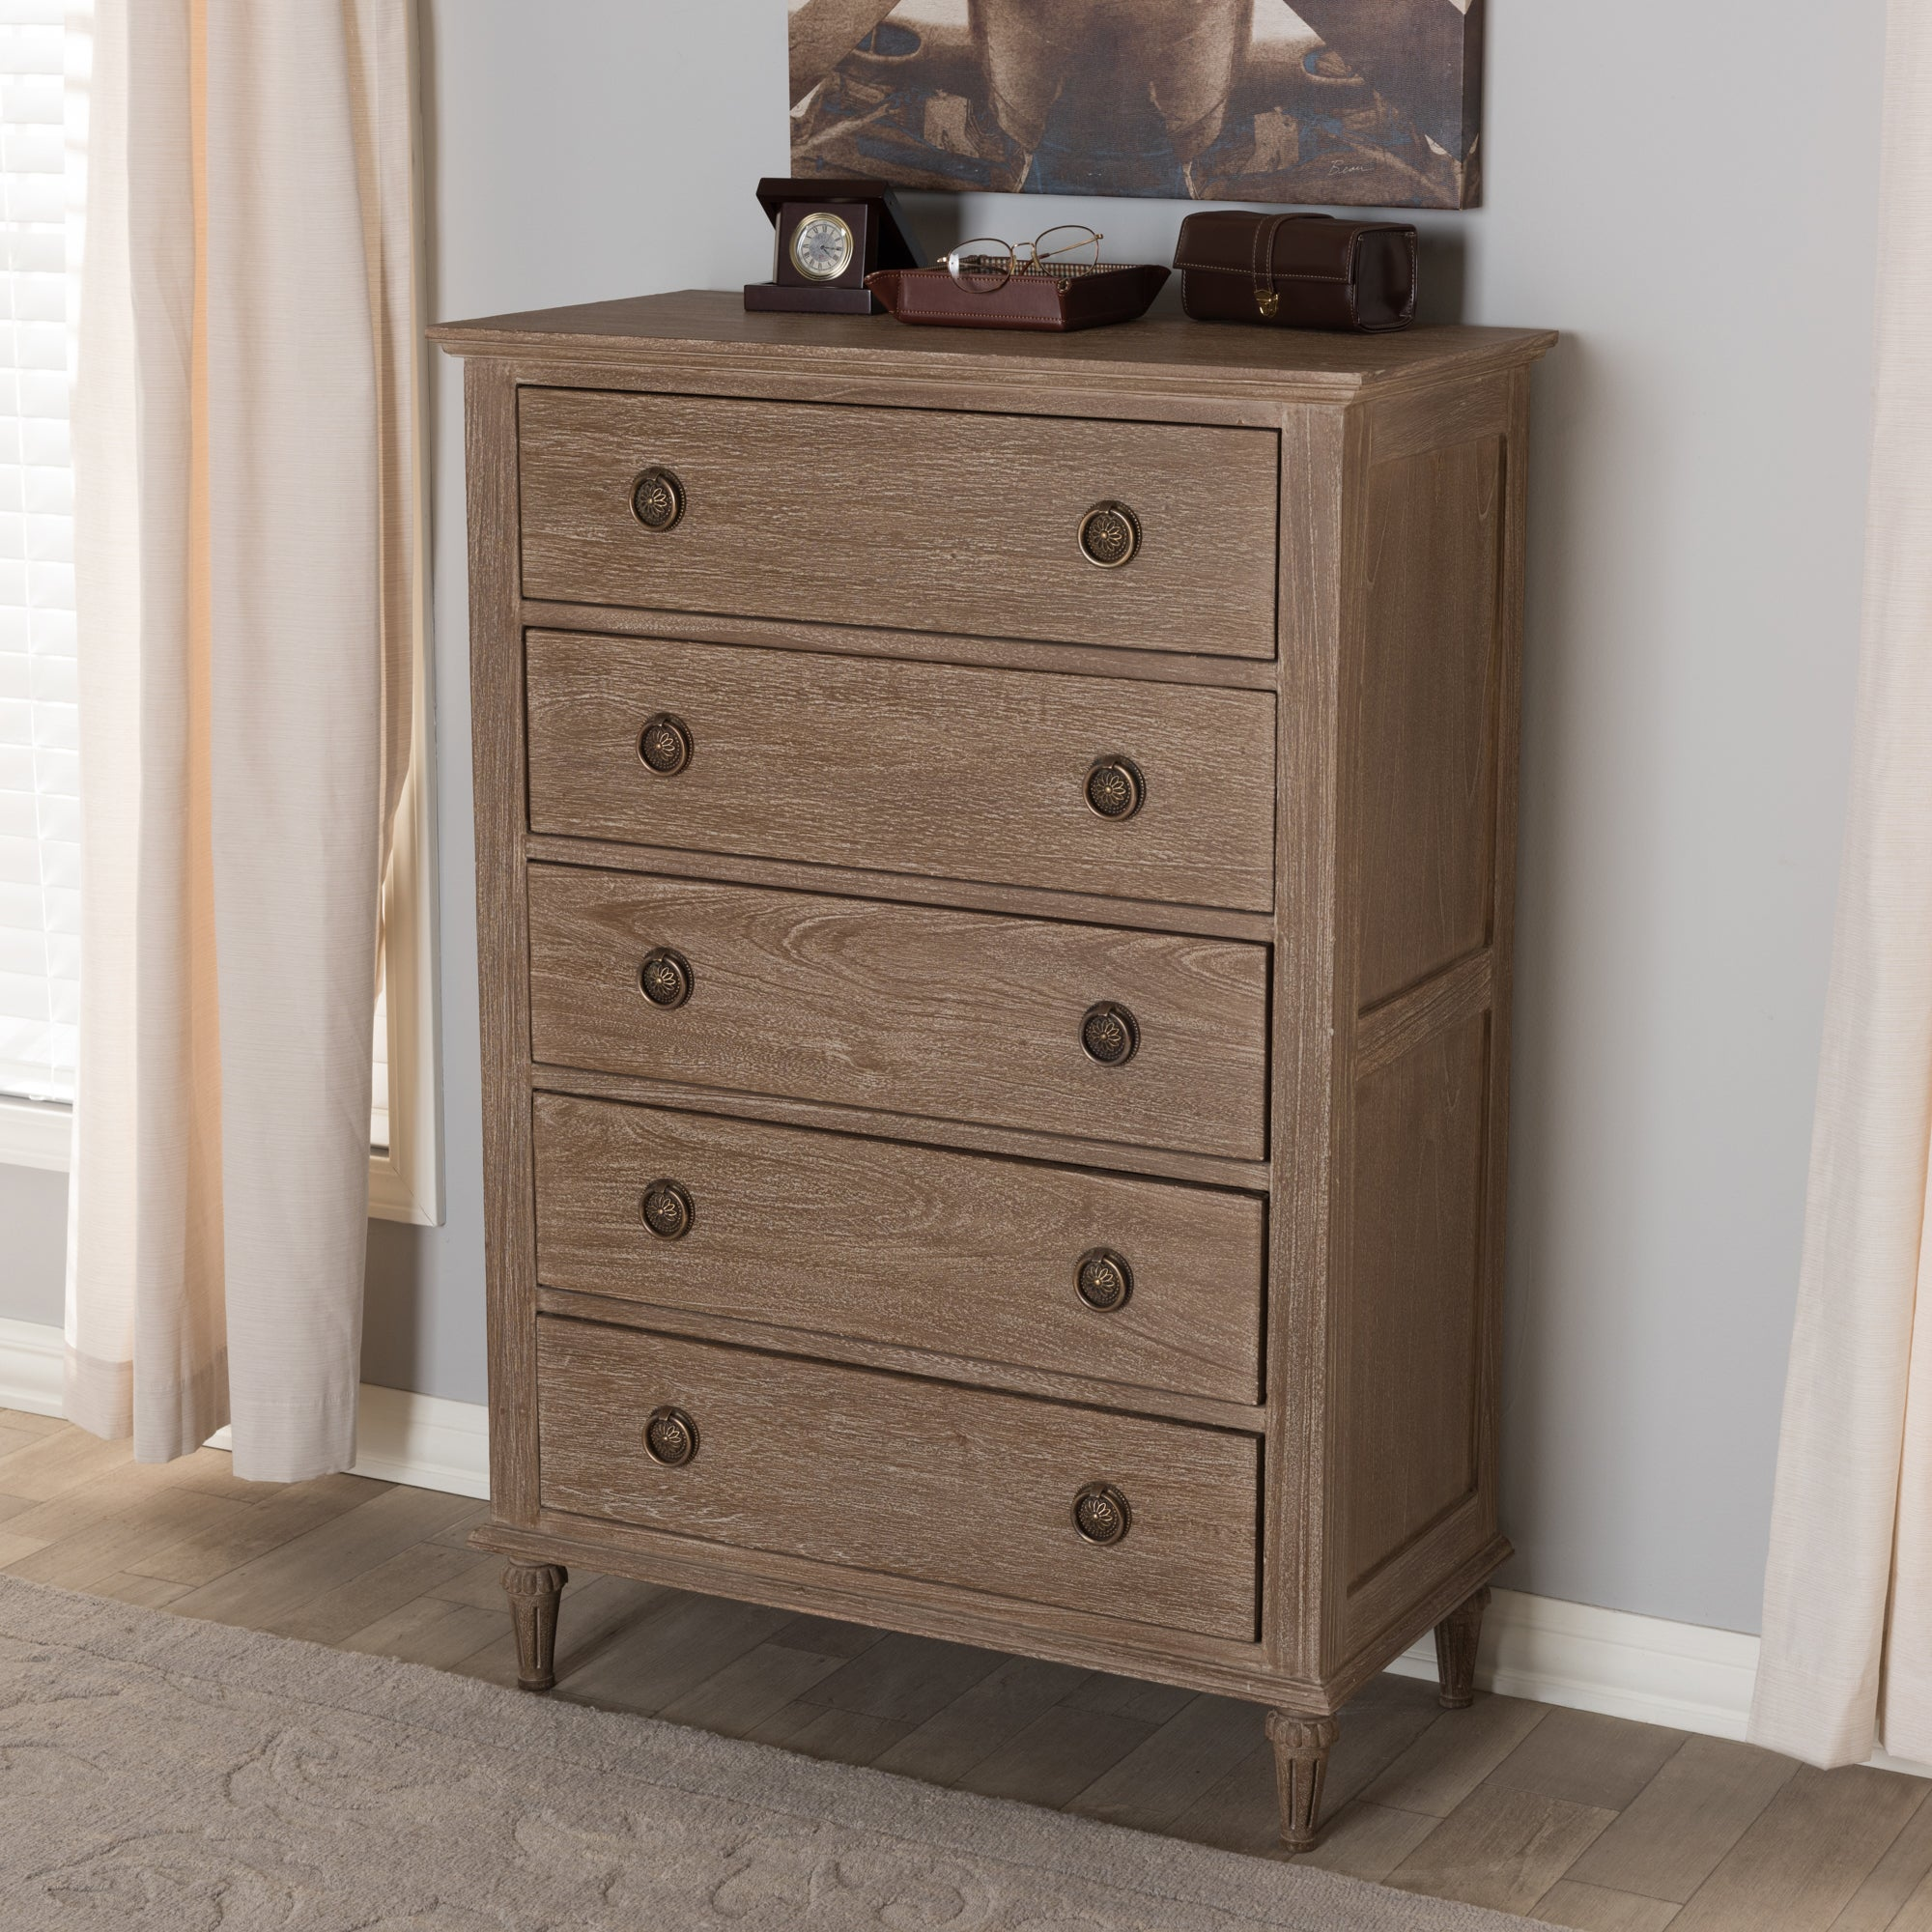 Shop rustic wood 5 drawer chest by baxton studio free shipping today overstock com 16564497